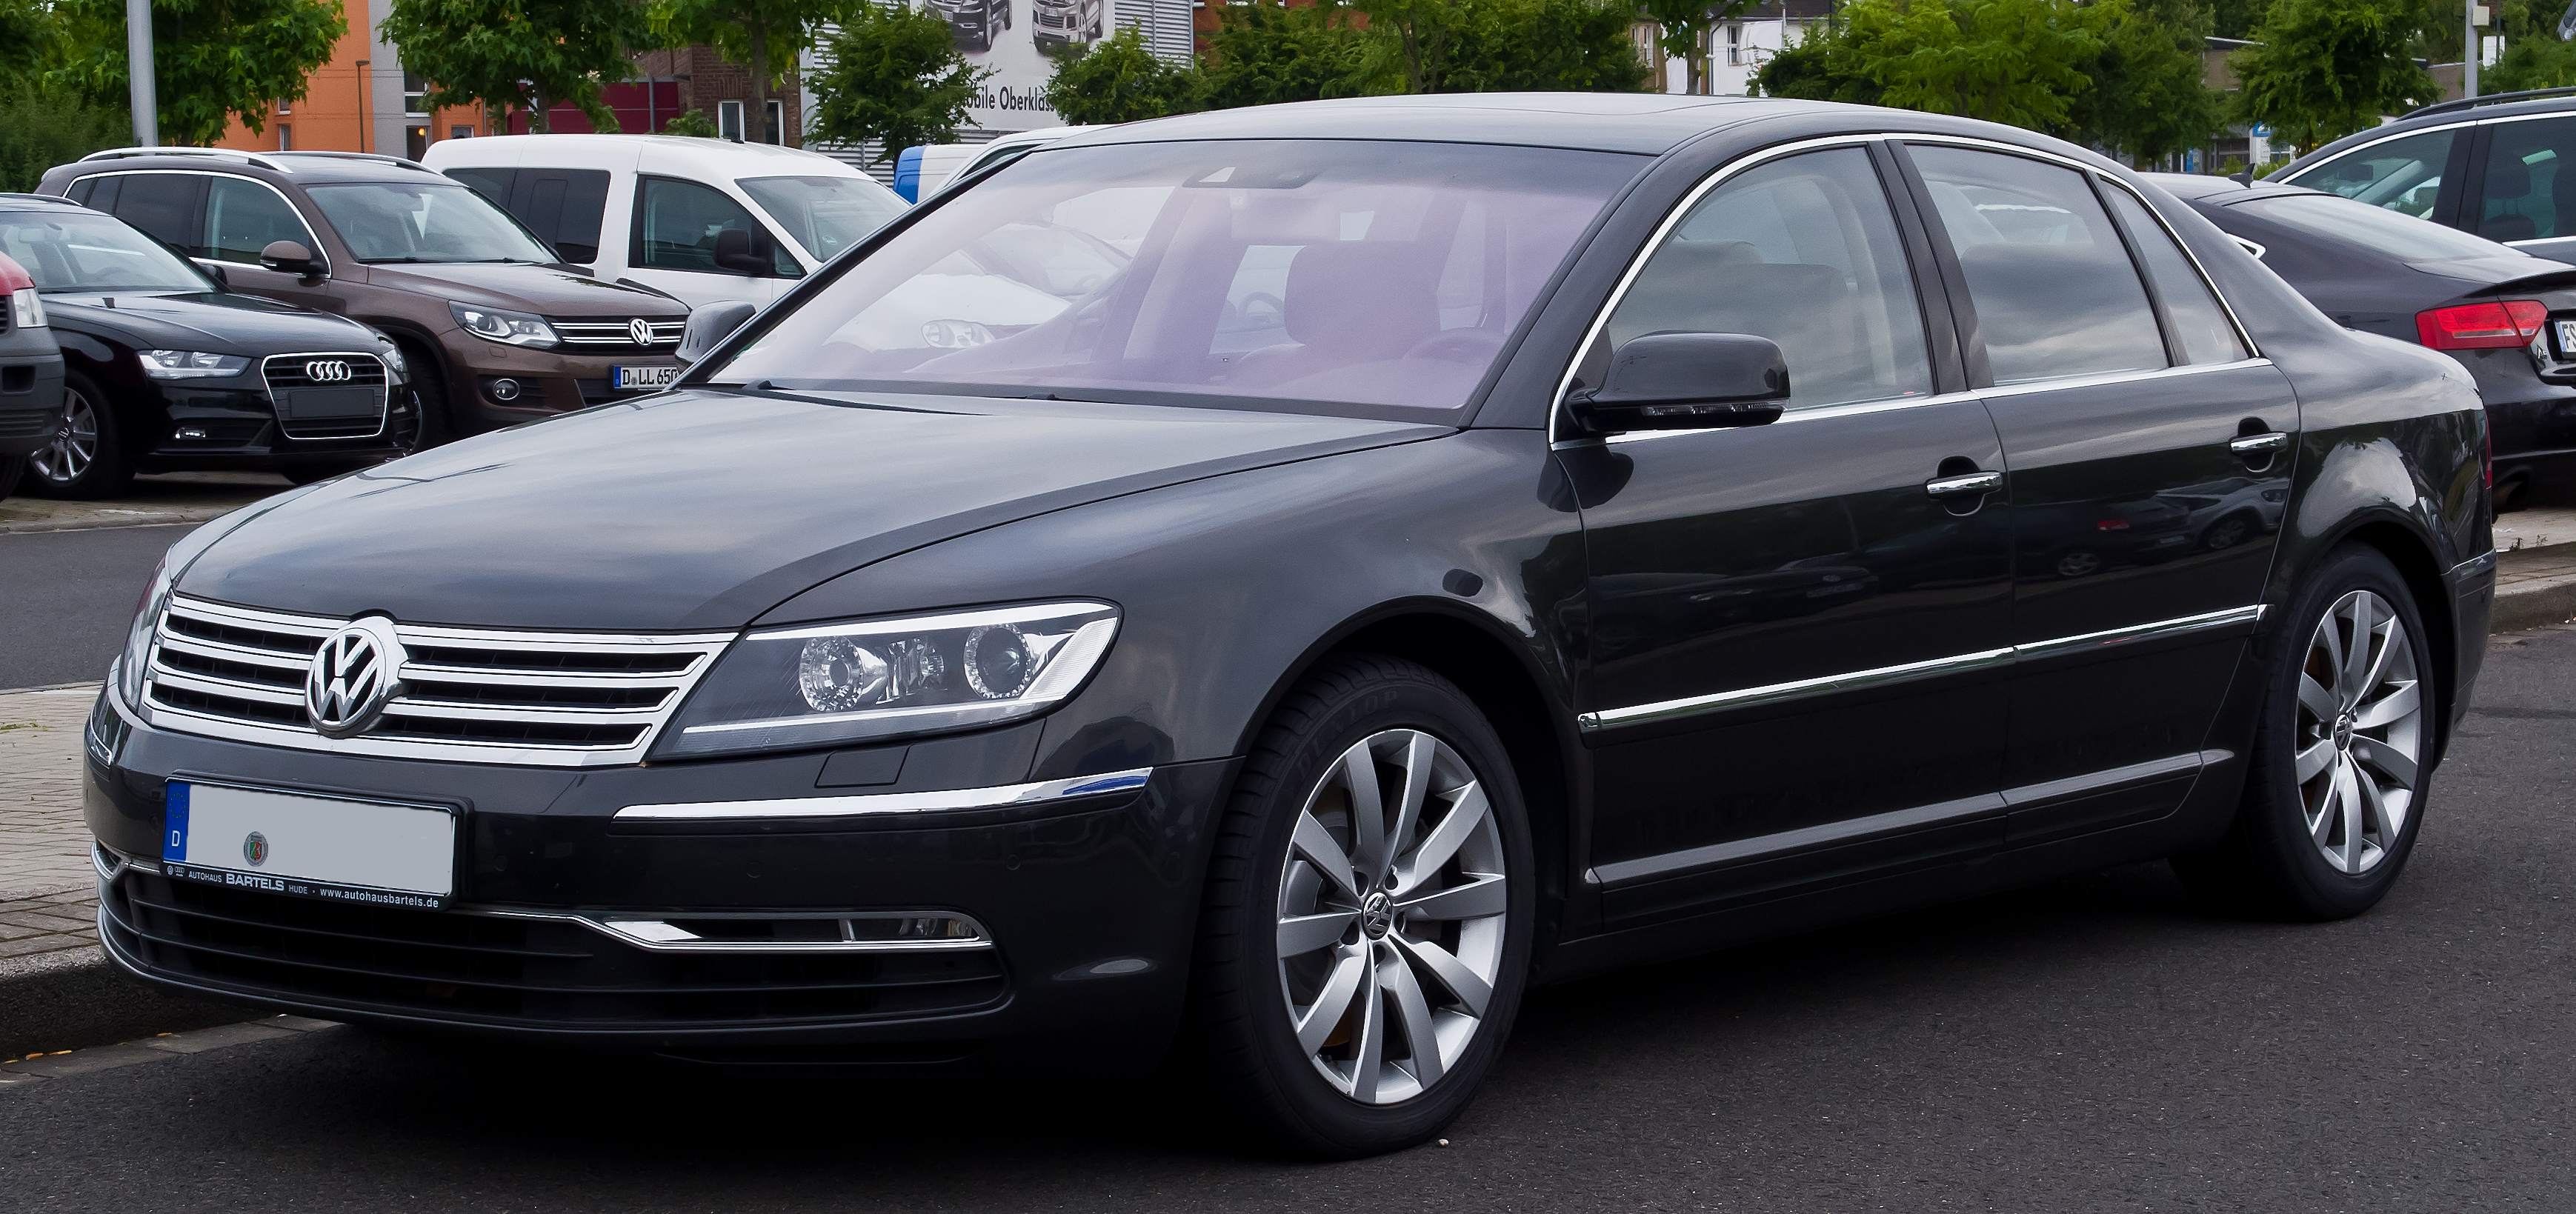 file vw phaeton 3 0 v6 tdi 4motion 2 facelift frontansicht 20 juni 2014 d. Black Bedroom Furniture Sets. Home Design Ideas